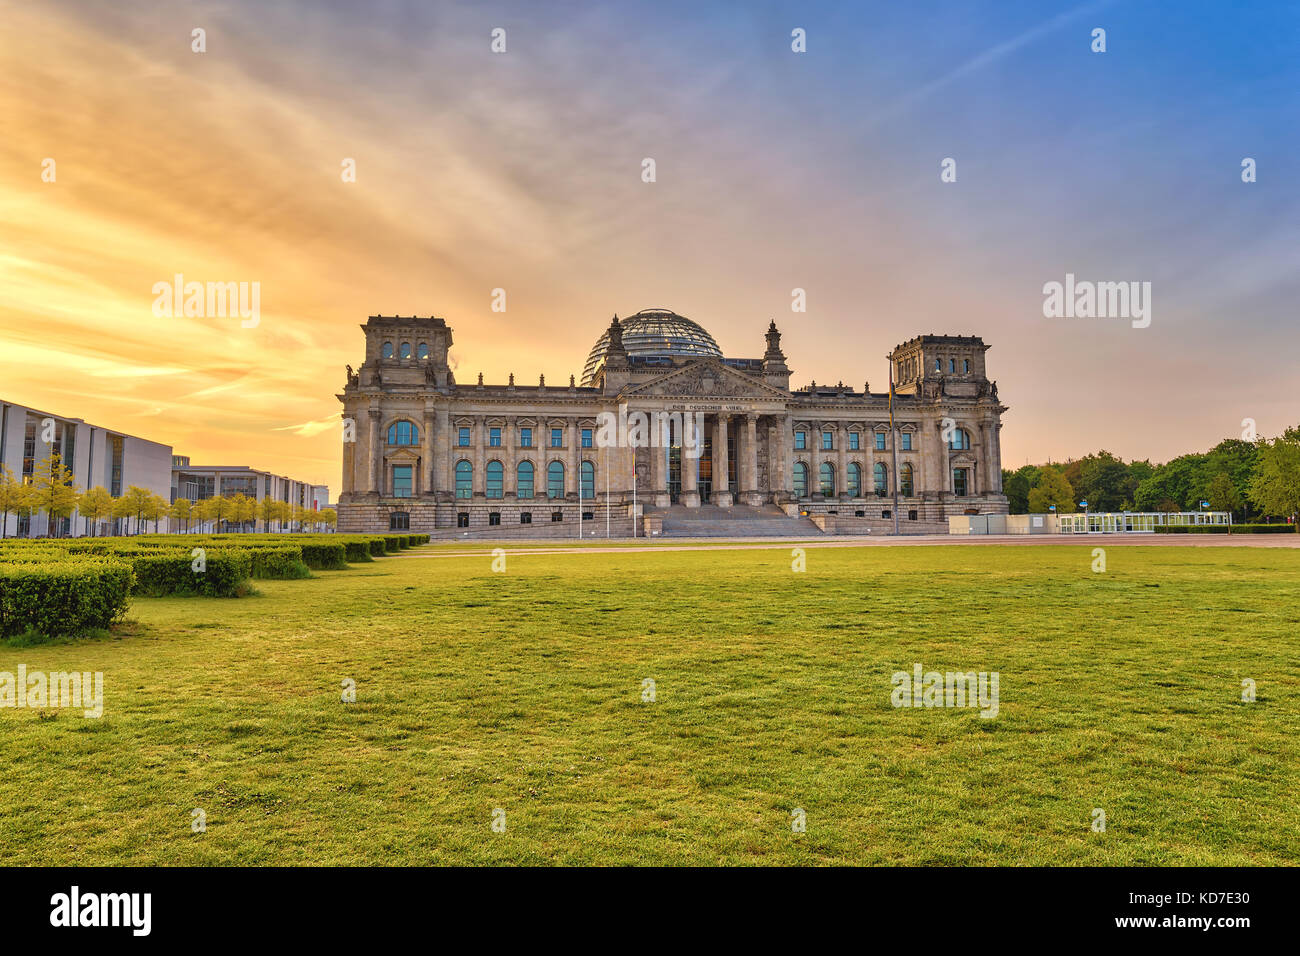 Berlin sunrise city skyline at Reichstag (German parliament building), Berlin, Germany - Stock Image